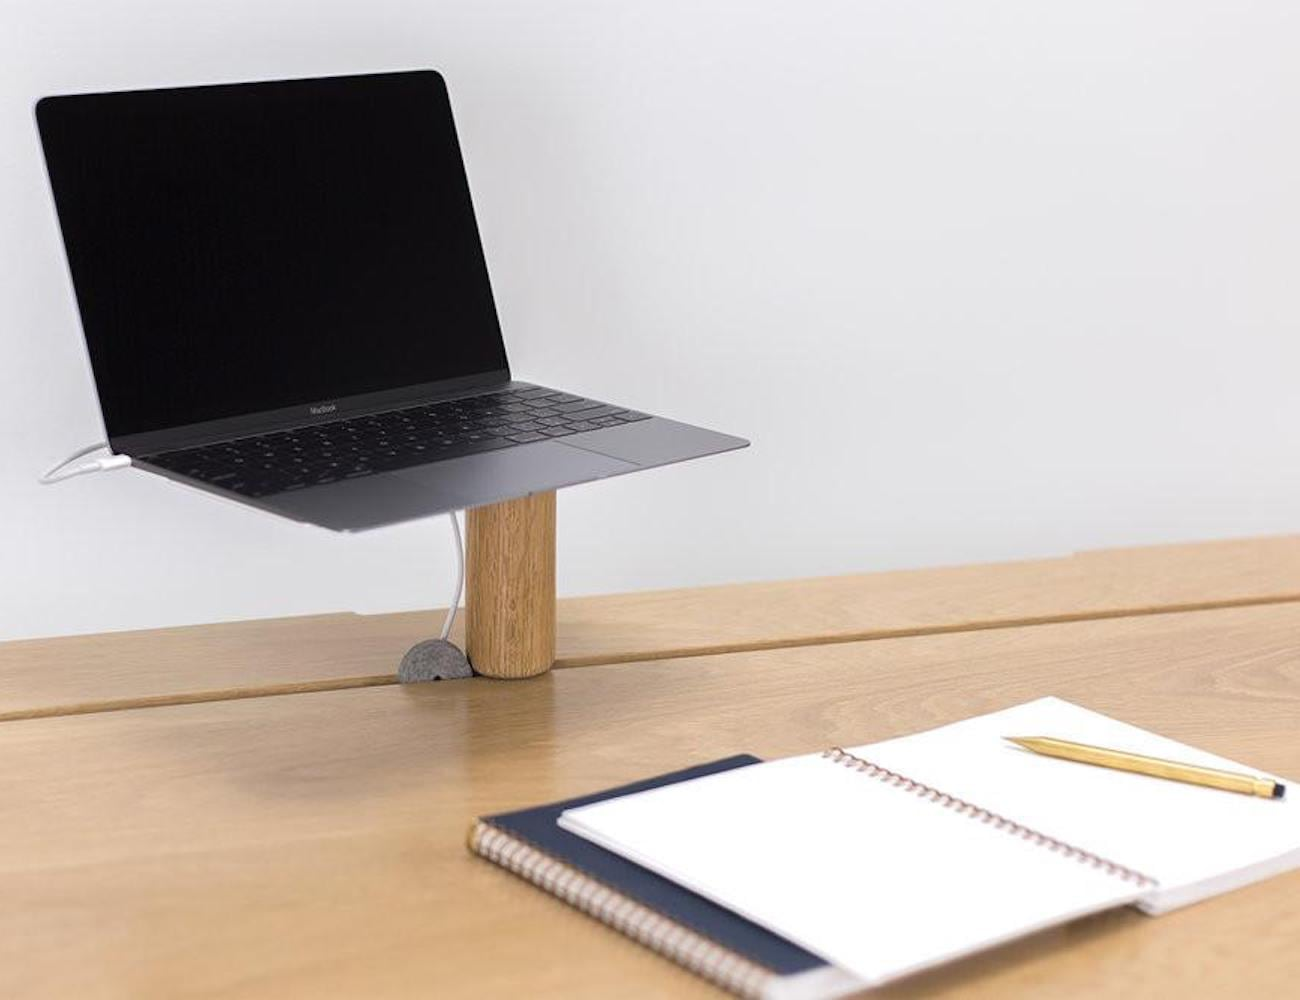 Artifox STAND Small Desk Stand elevates your workspace